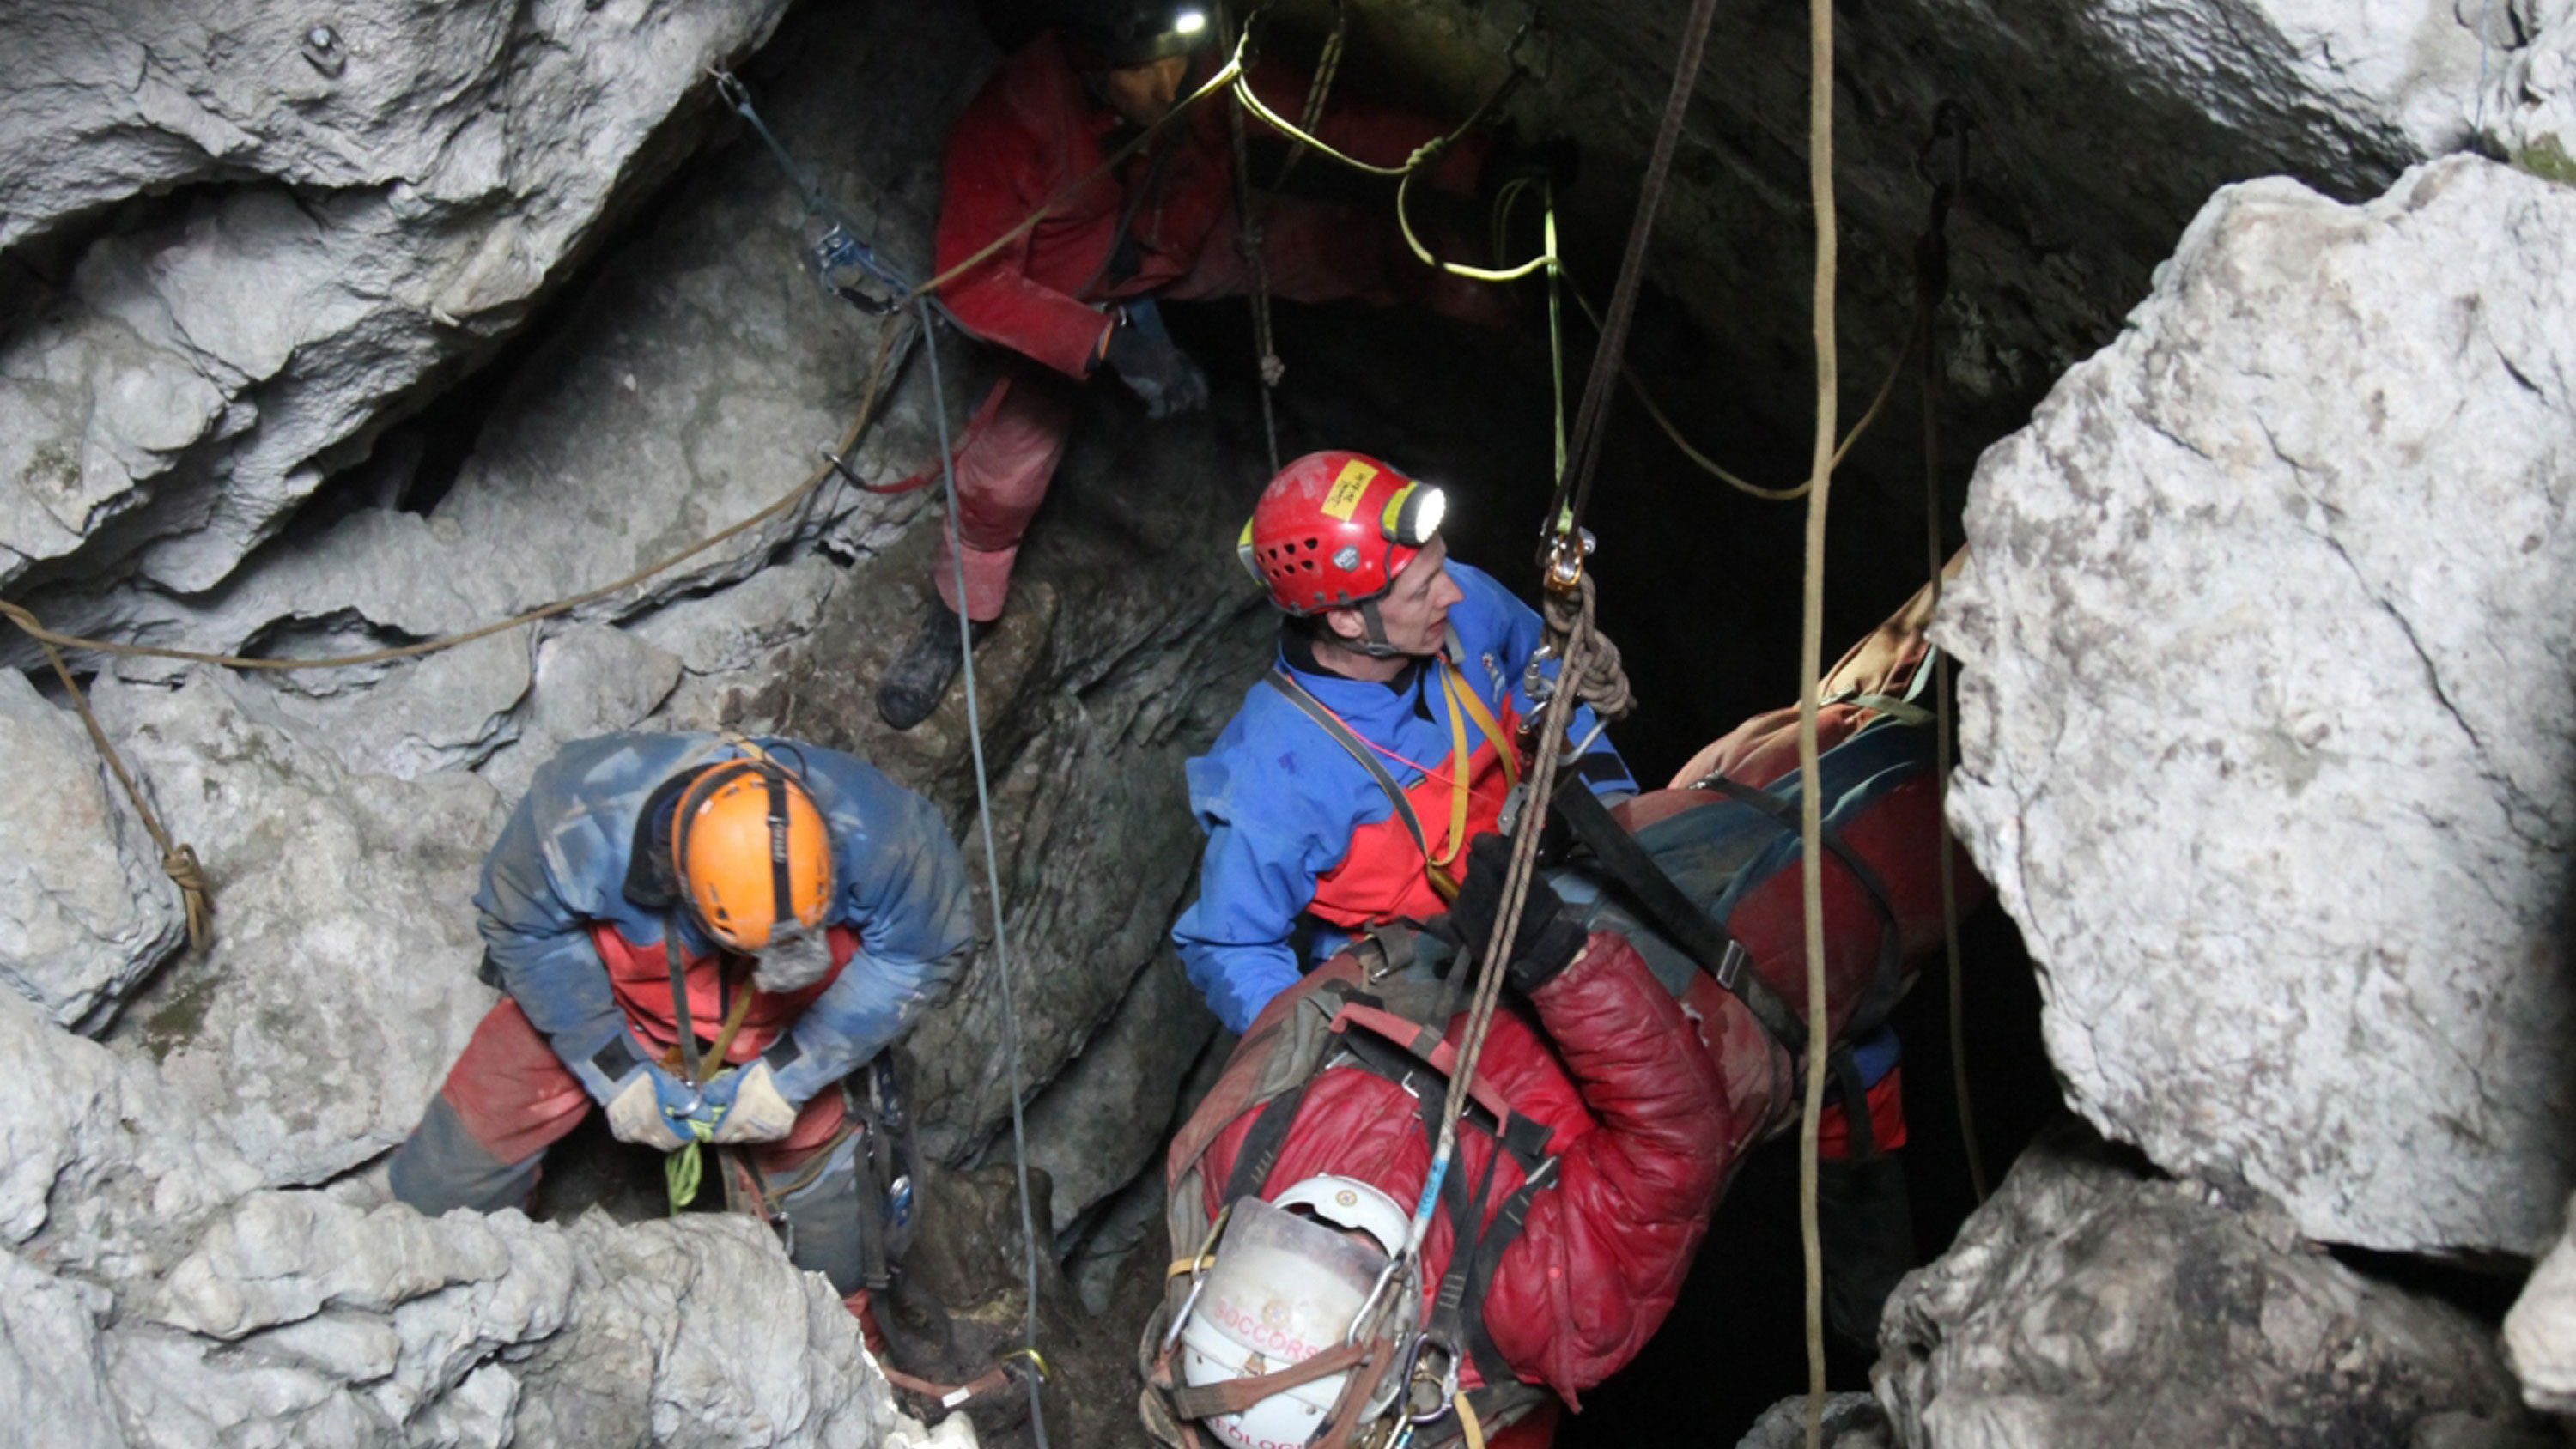 It Took More Than 700 People to Rescue This Man from Germany's Deepest Cave